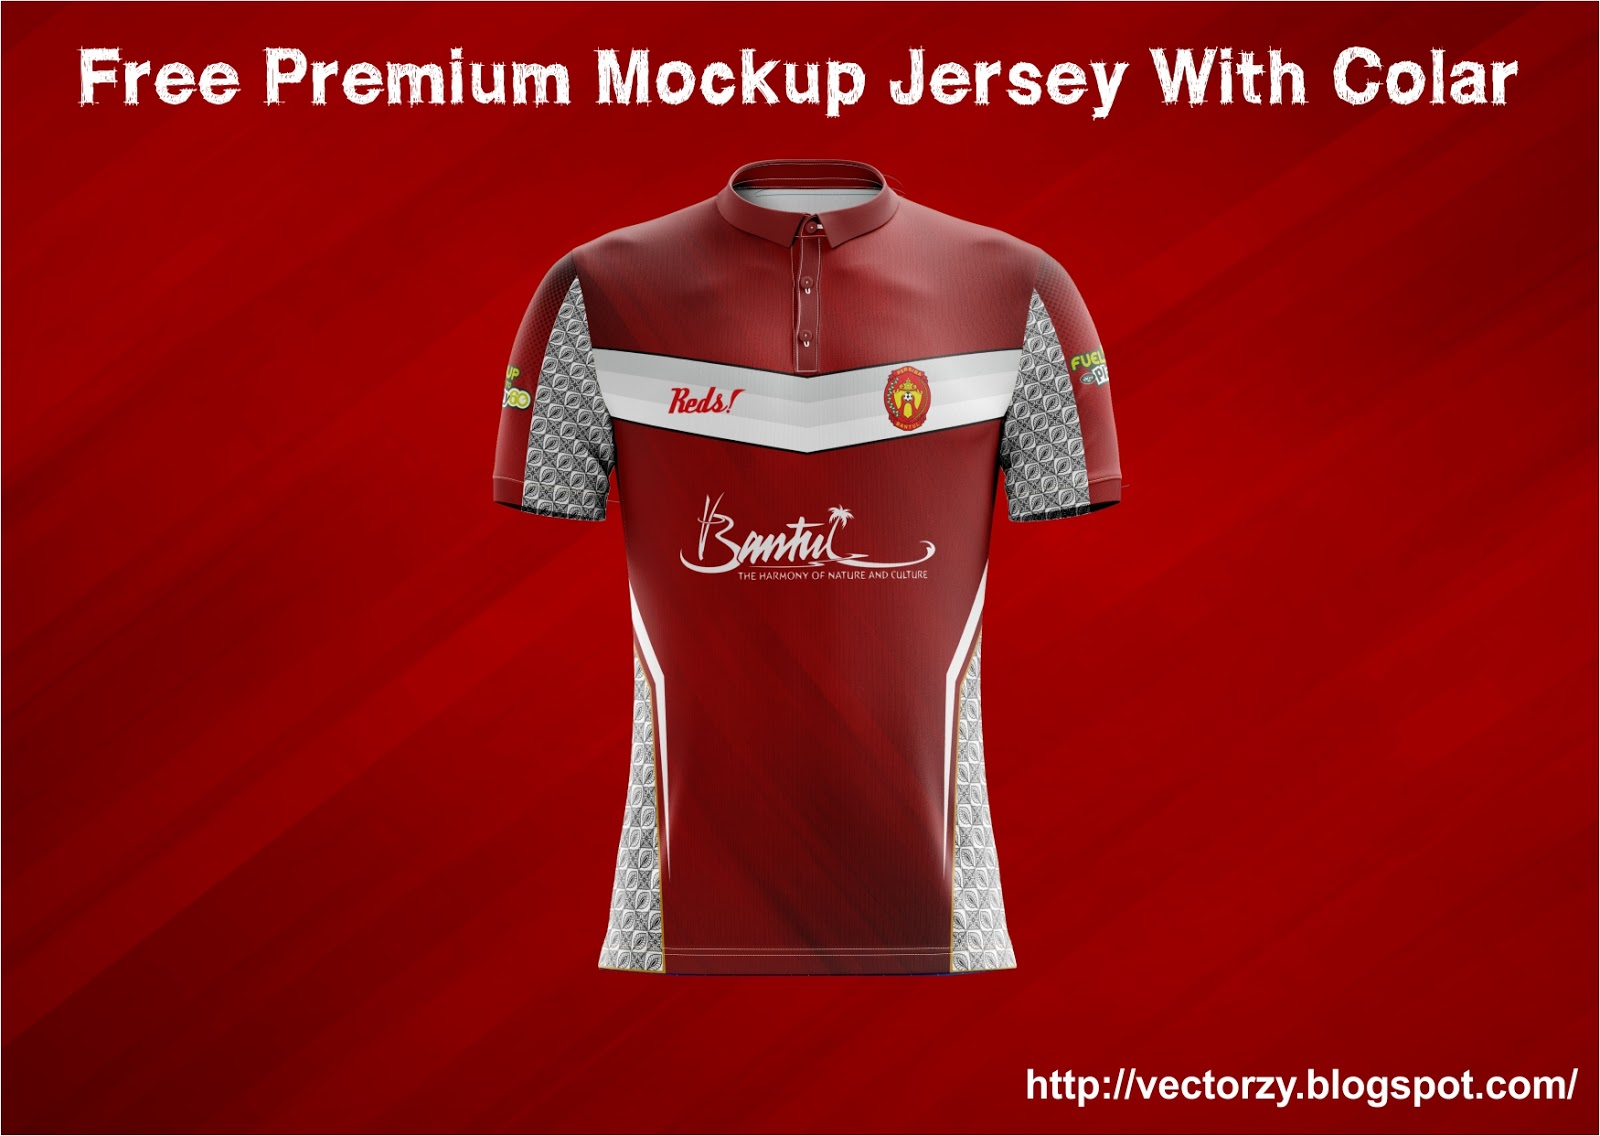 Download Free Download Premium Mockup Jersey With Colar Photoshop ...